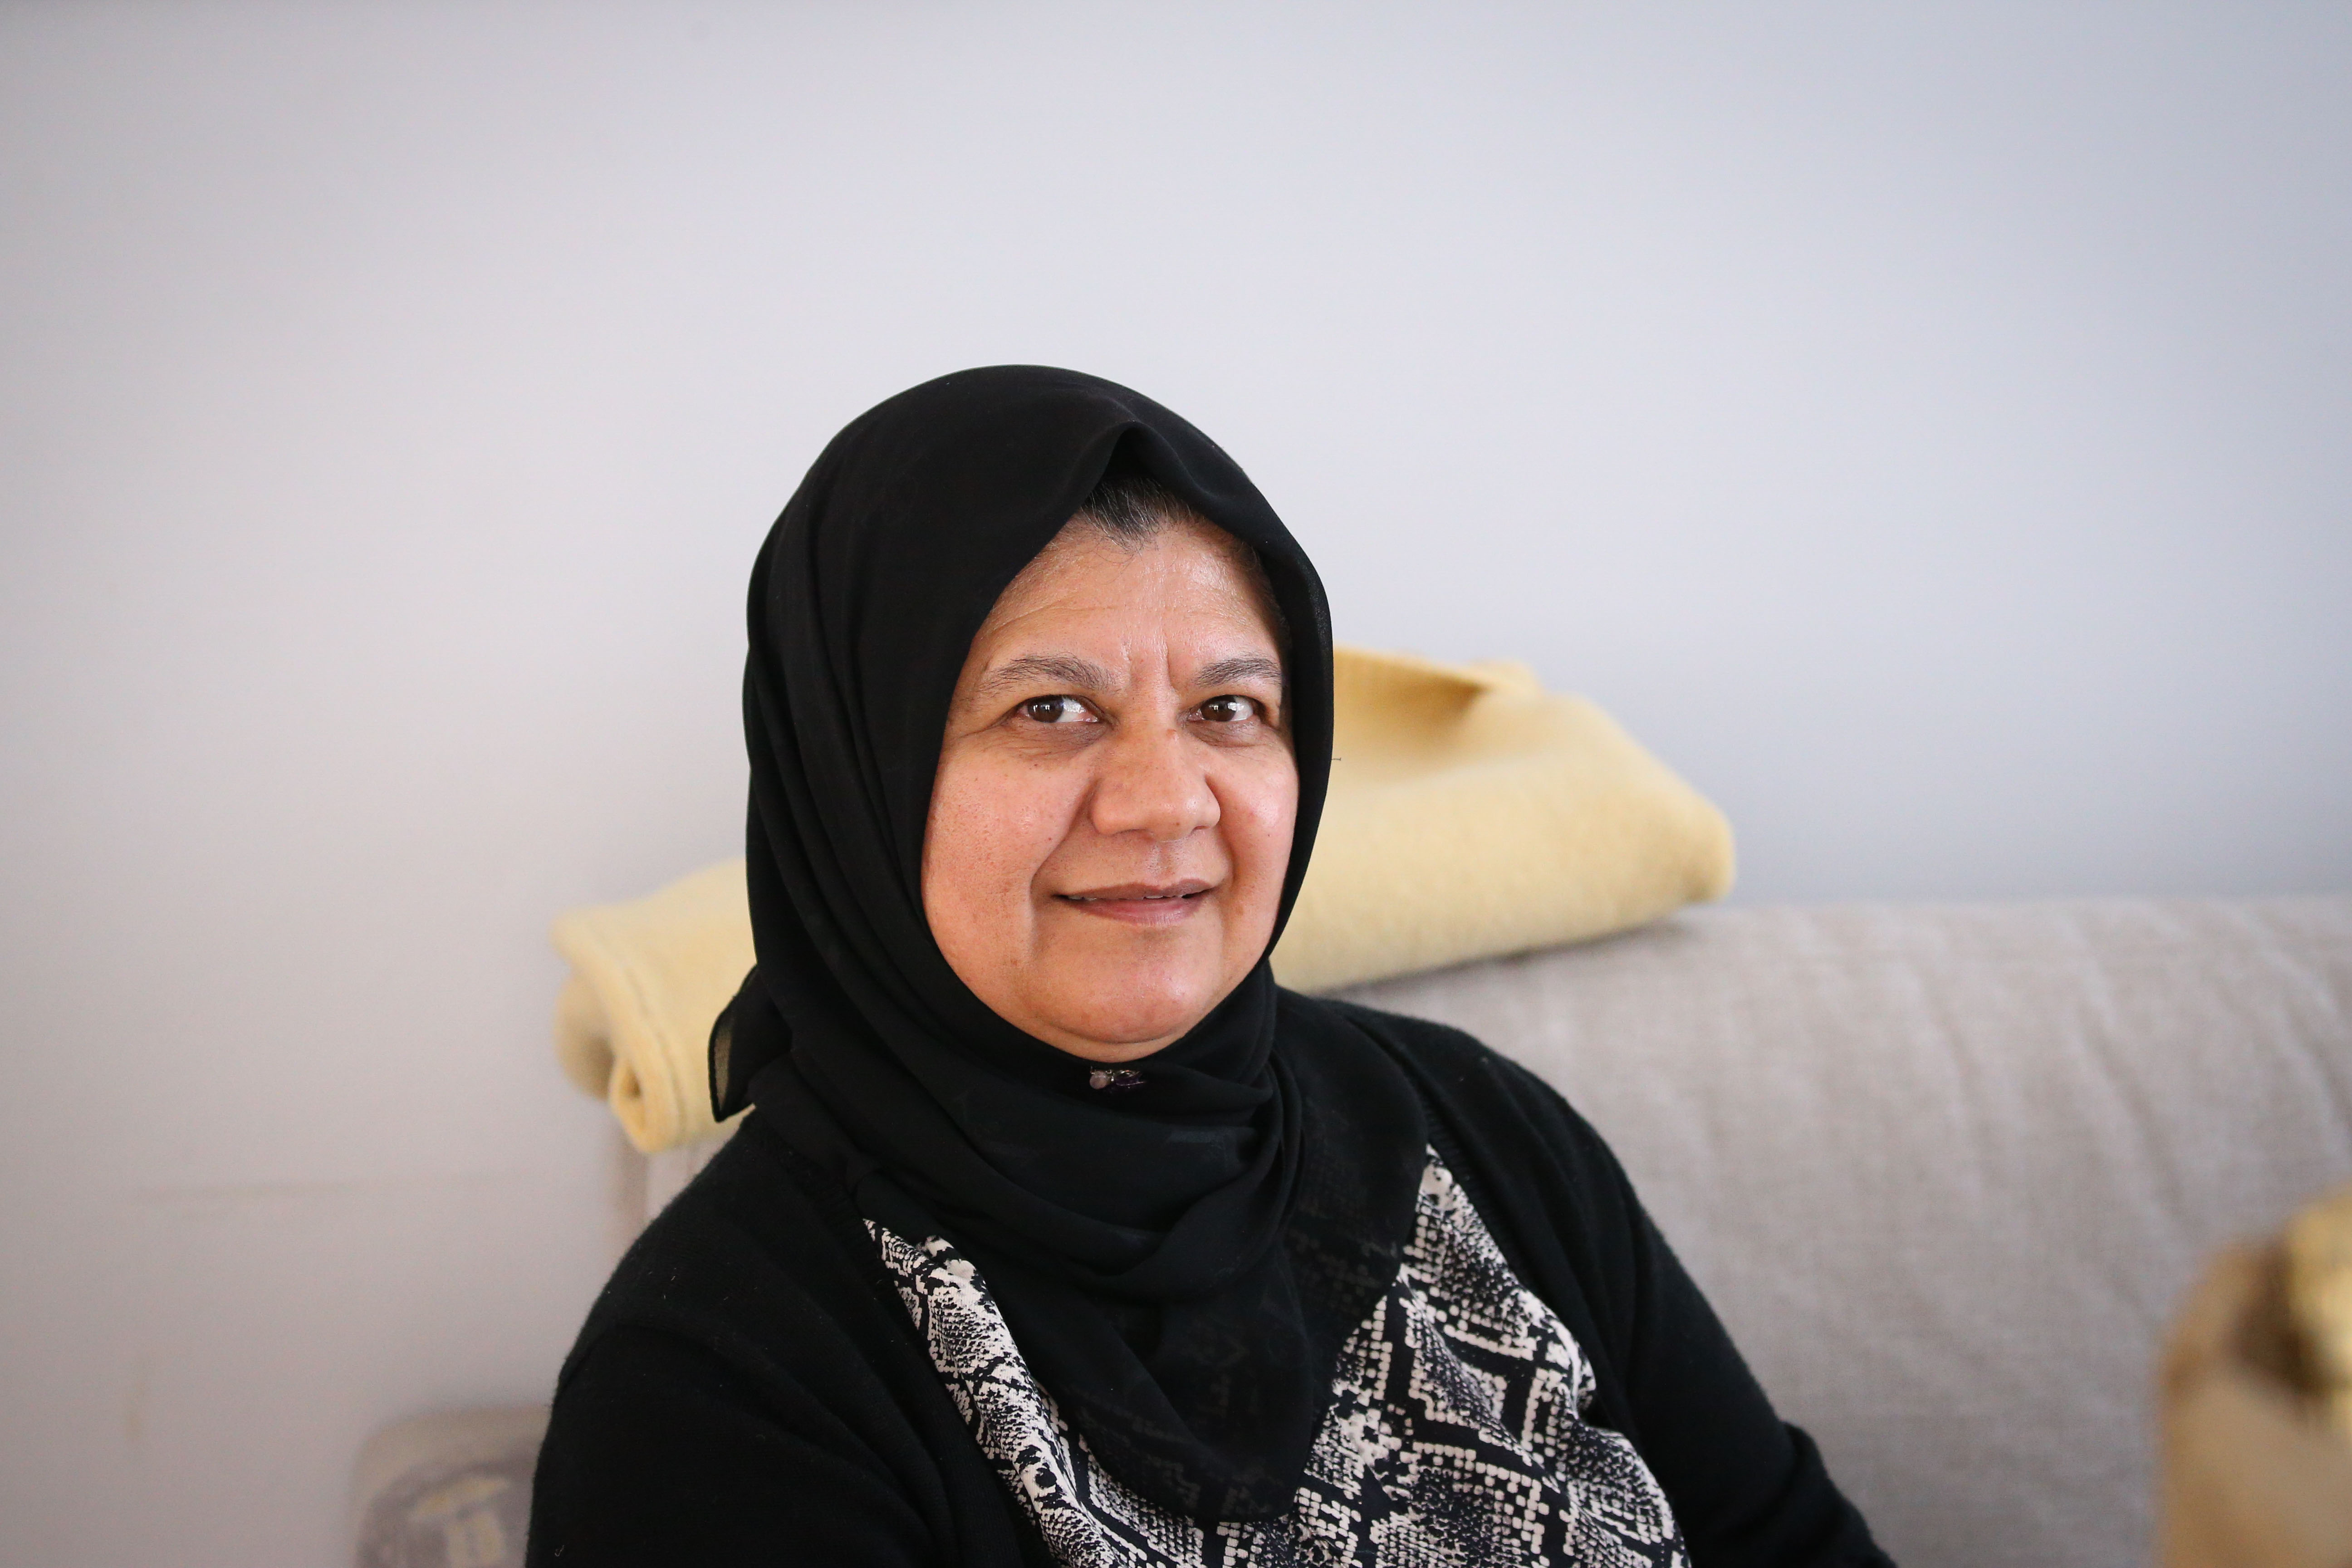 12 September 2019: Fatima Haron-Masoet, Imam Haron's daughter, at the family home in Athlone, Cape Town.